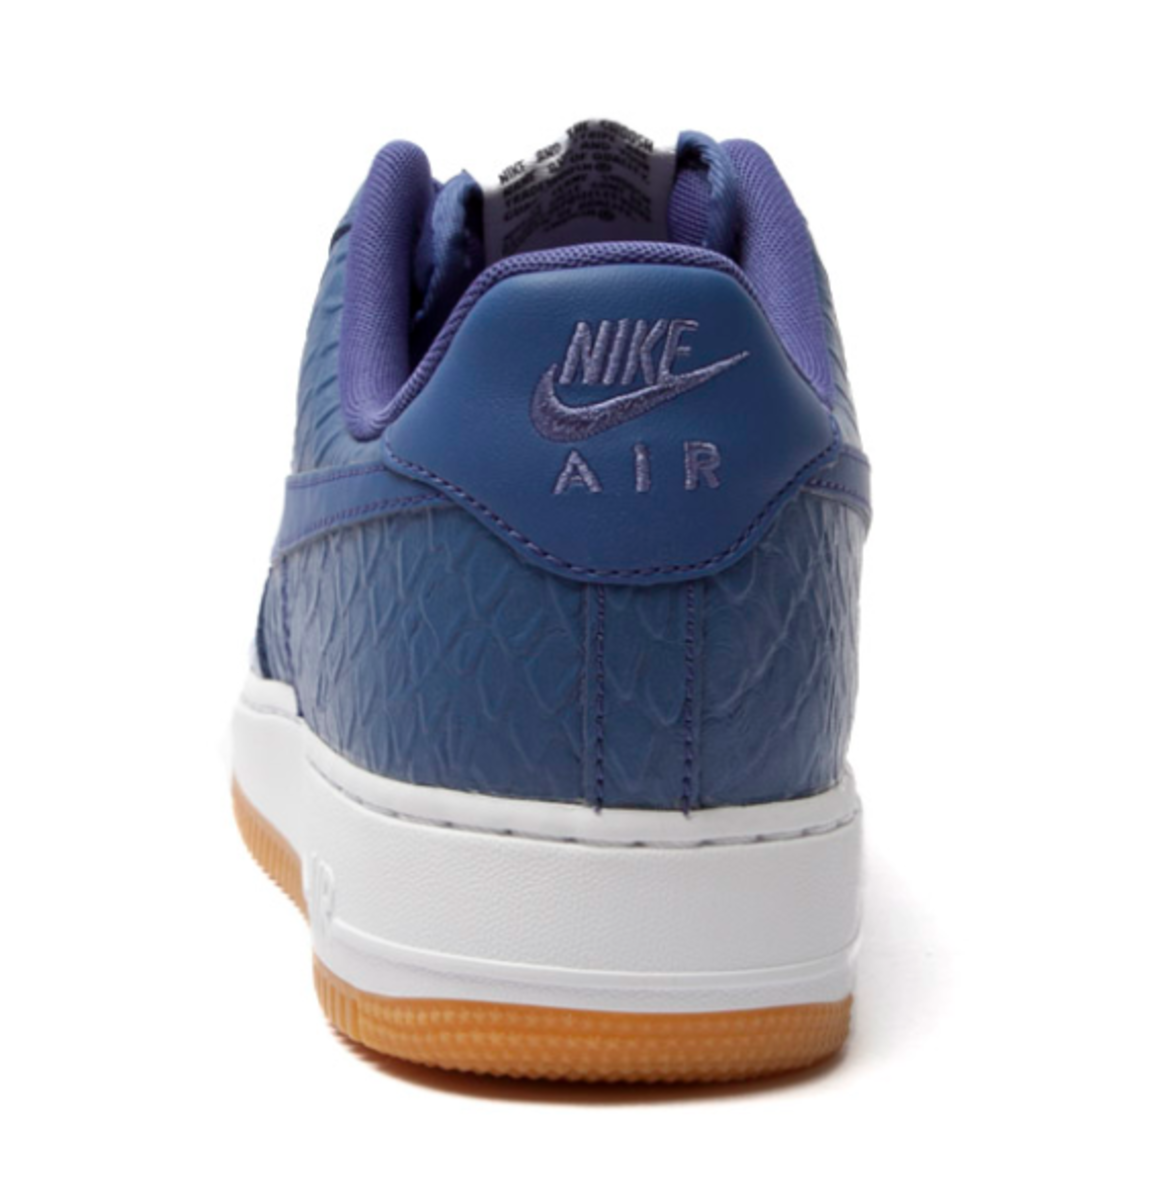 nike-air-force-1-croc-gum-02